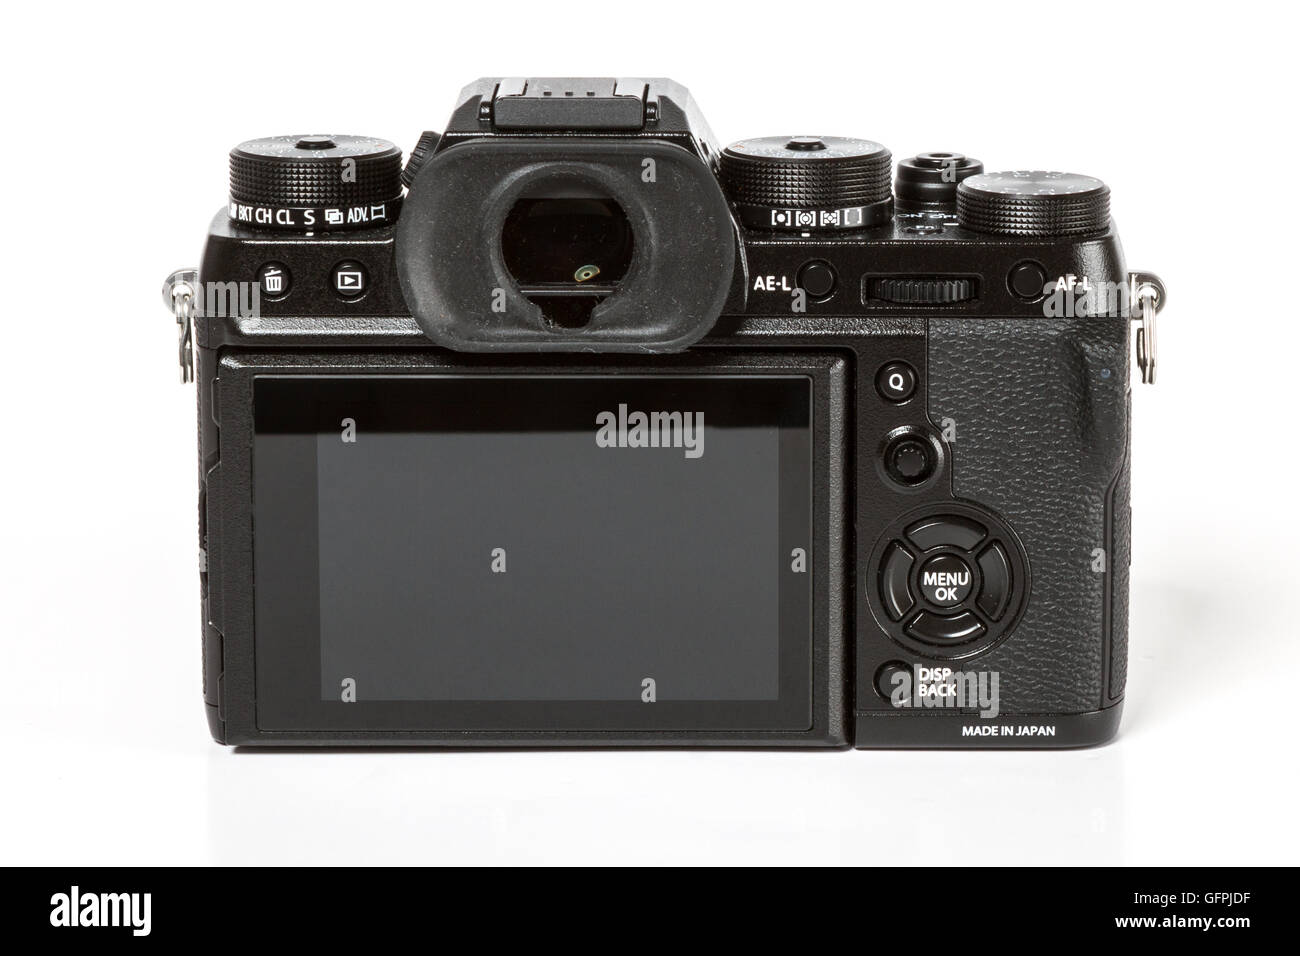 FUJIFILM X-T2, 24 megapixels, 4K video mirrorless camera from back on white background - Stock Image